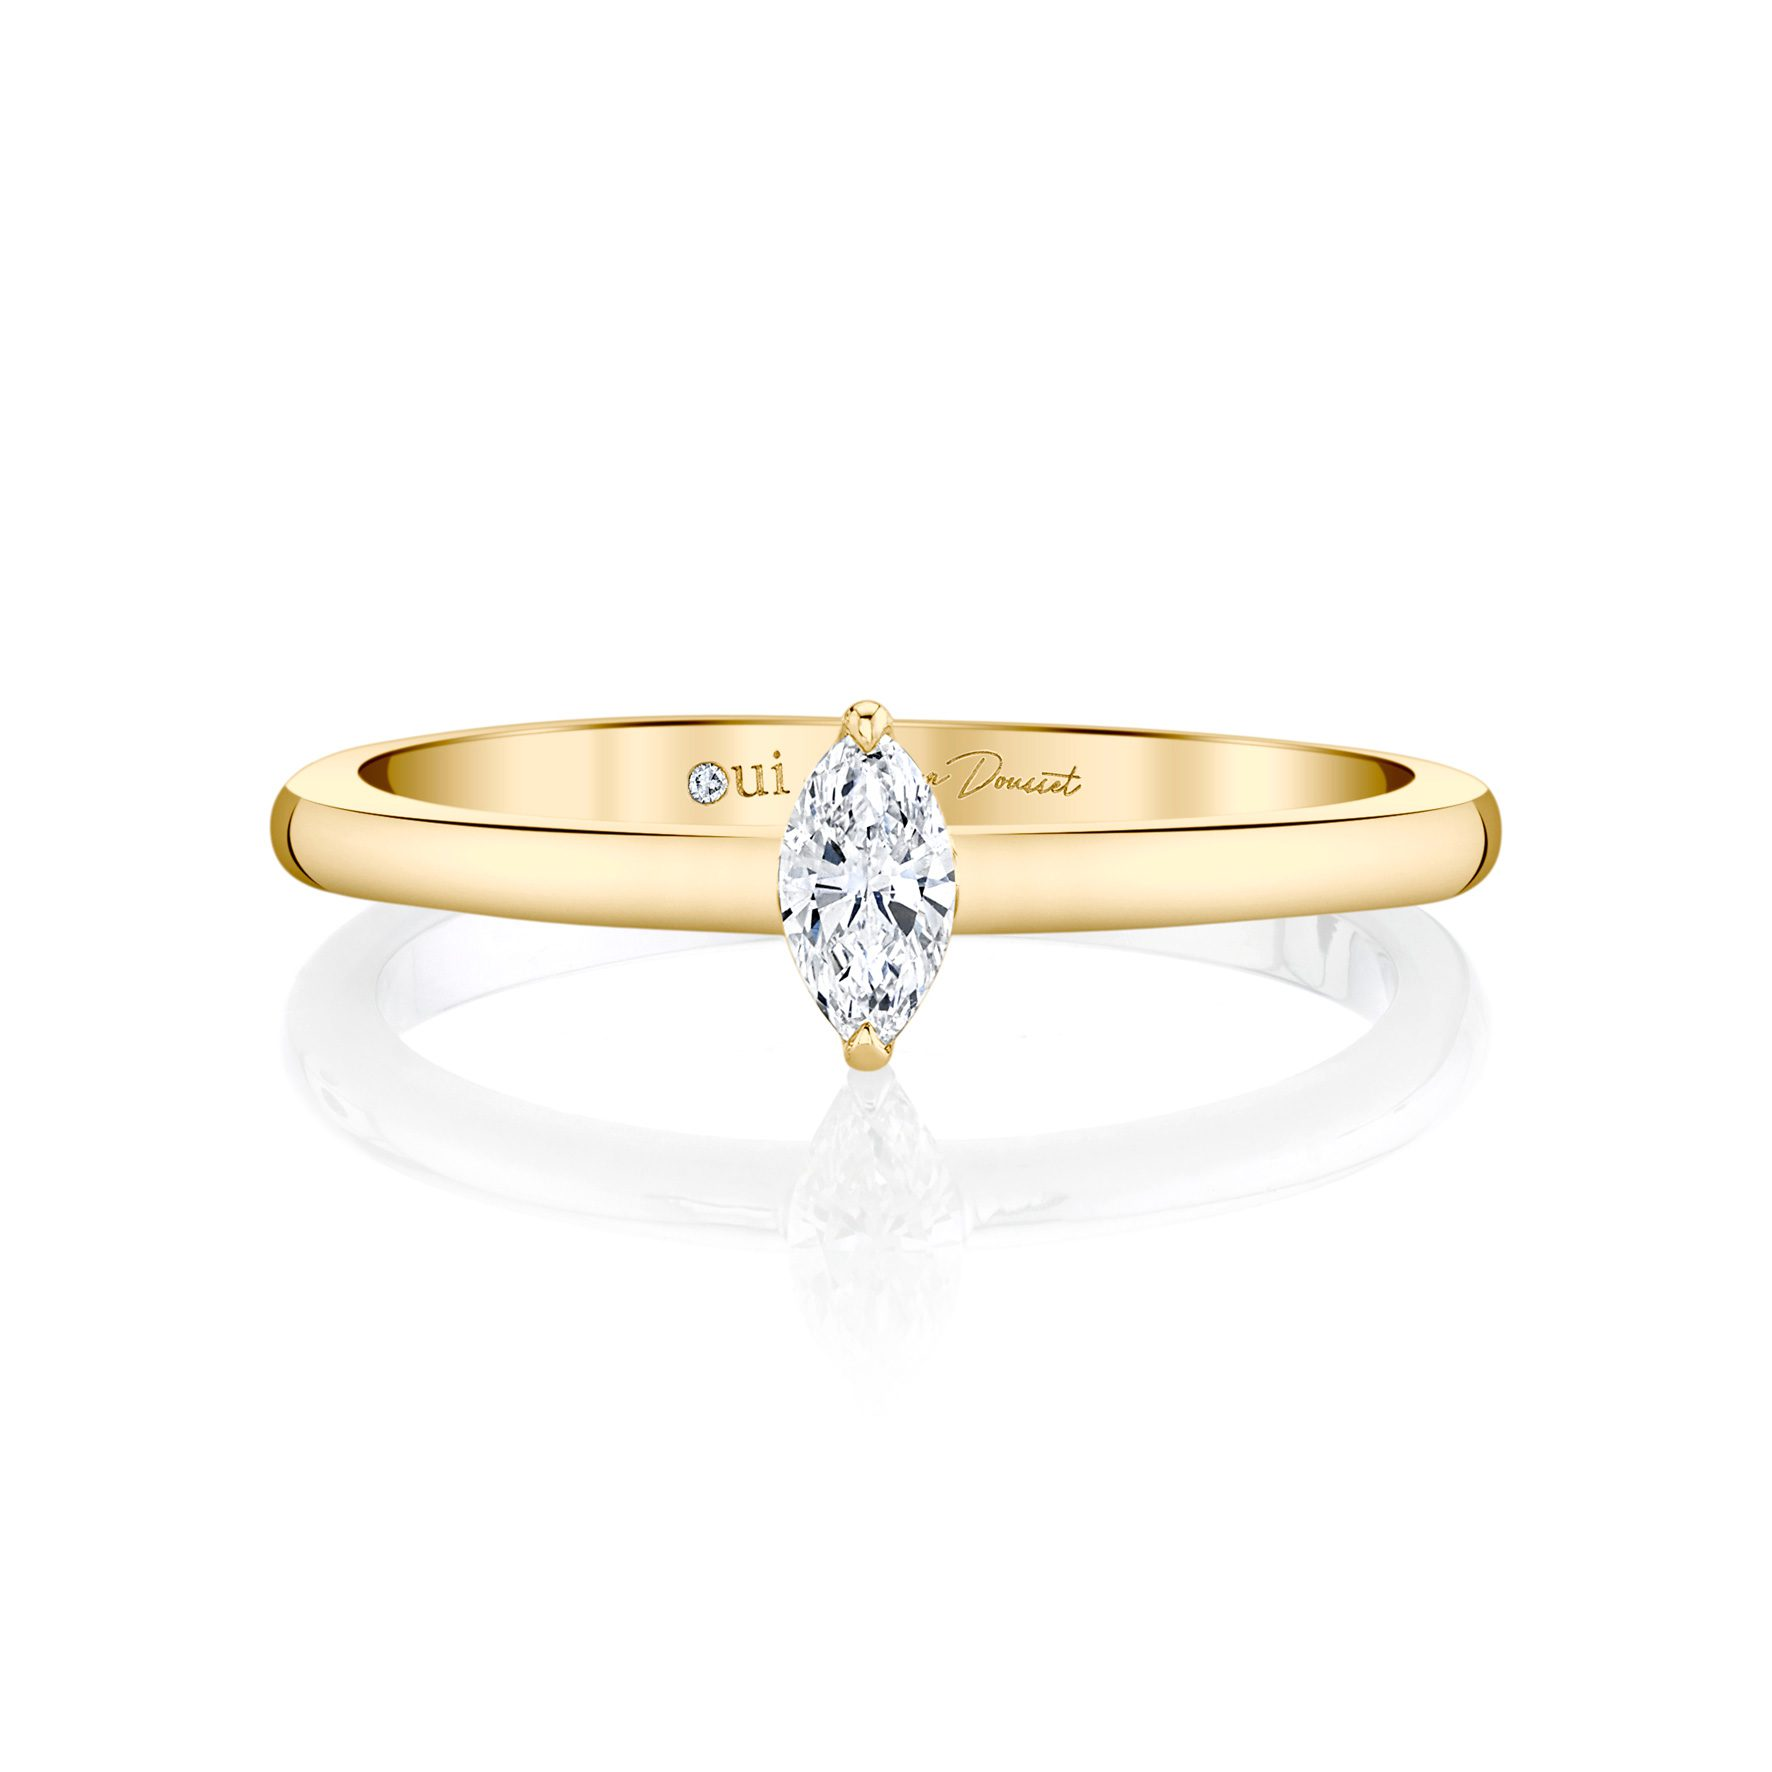 La Petite Marquise Diamond Wedding Band in 18k Yellow Gold Front View by Oui by Jean Dousset